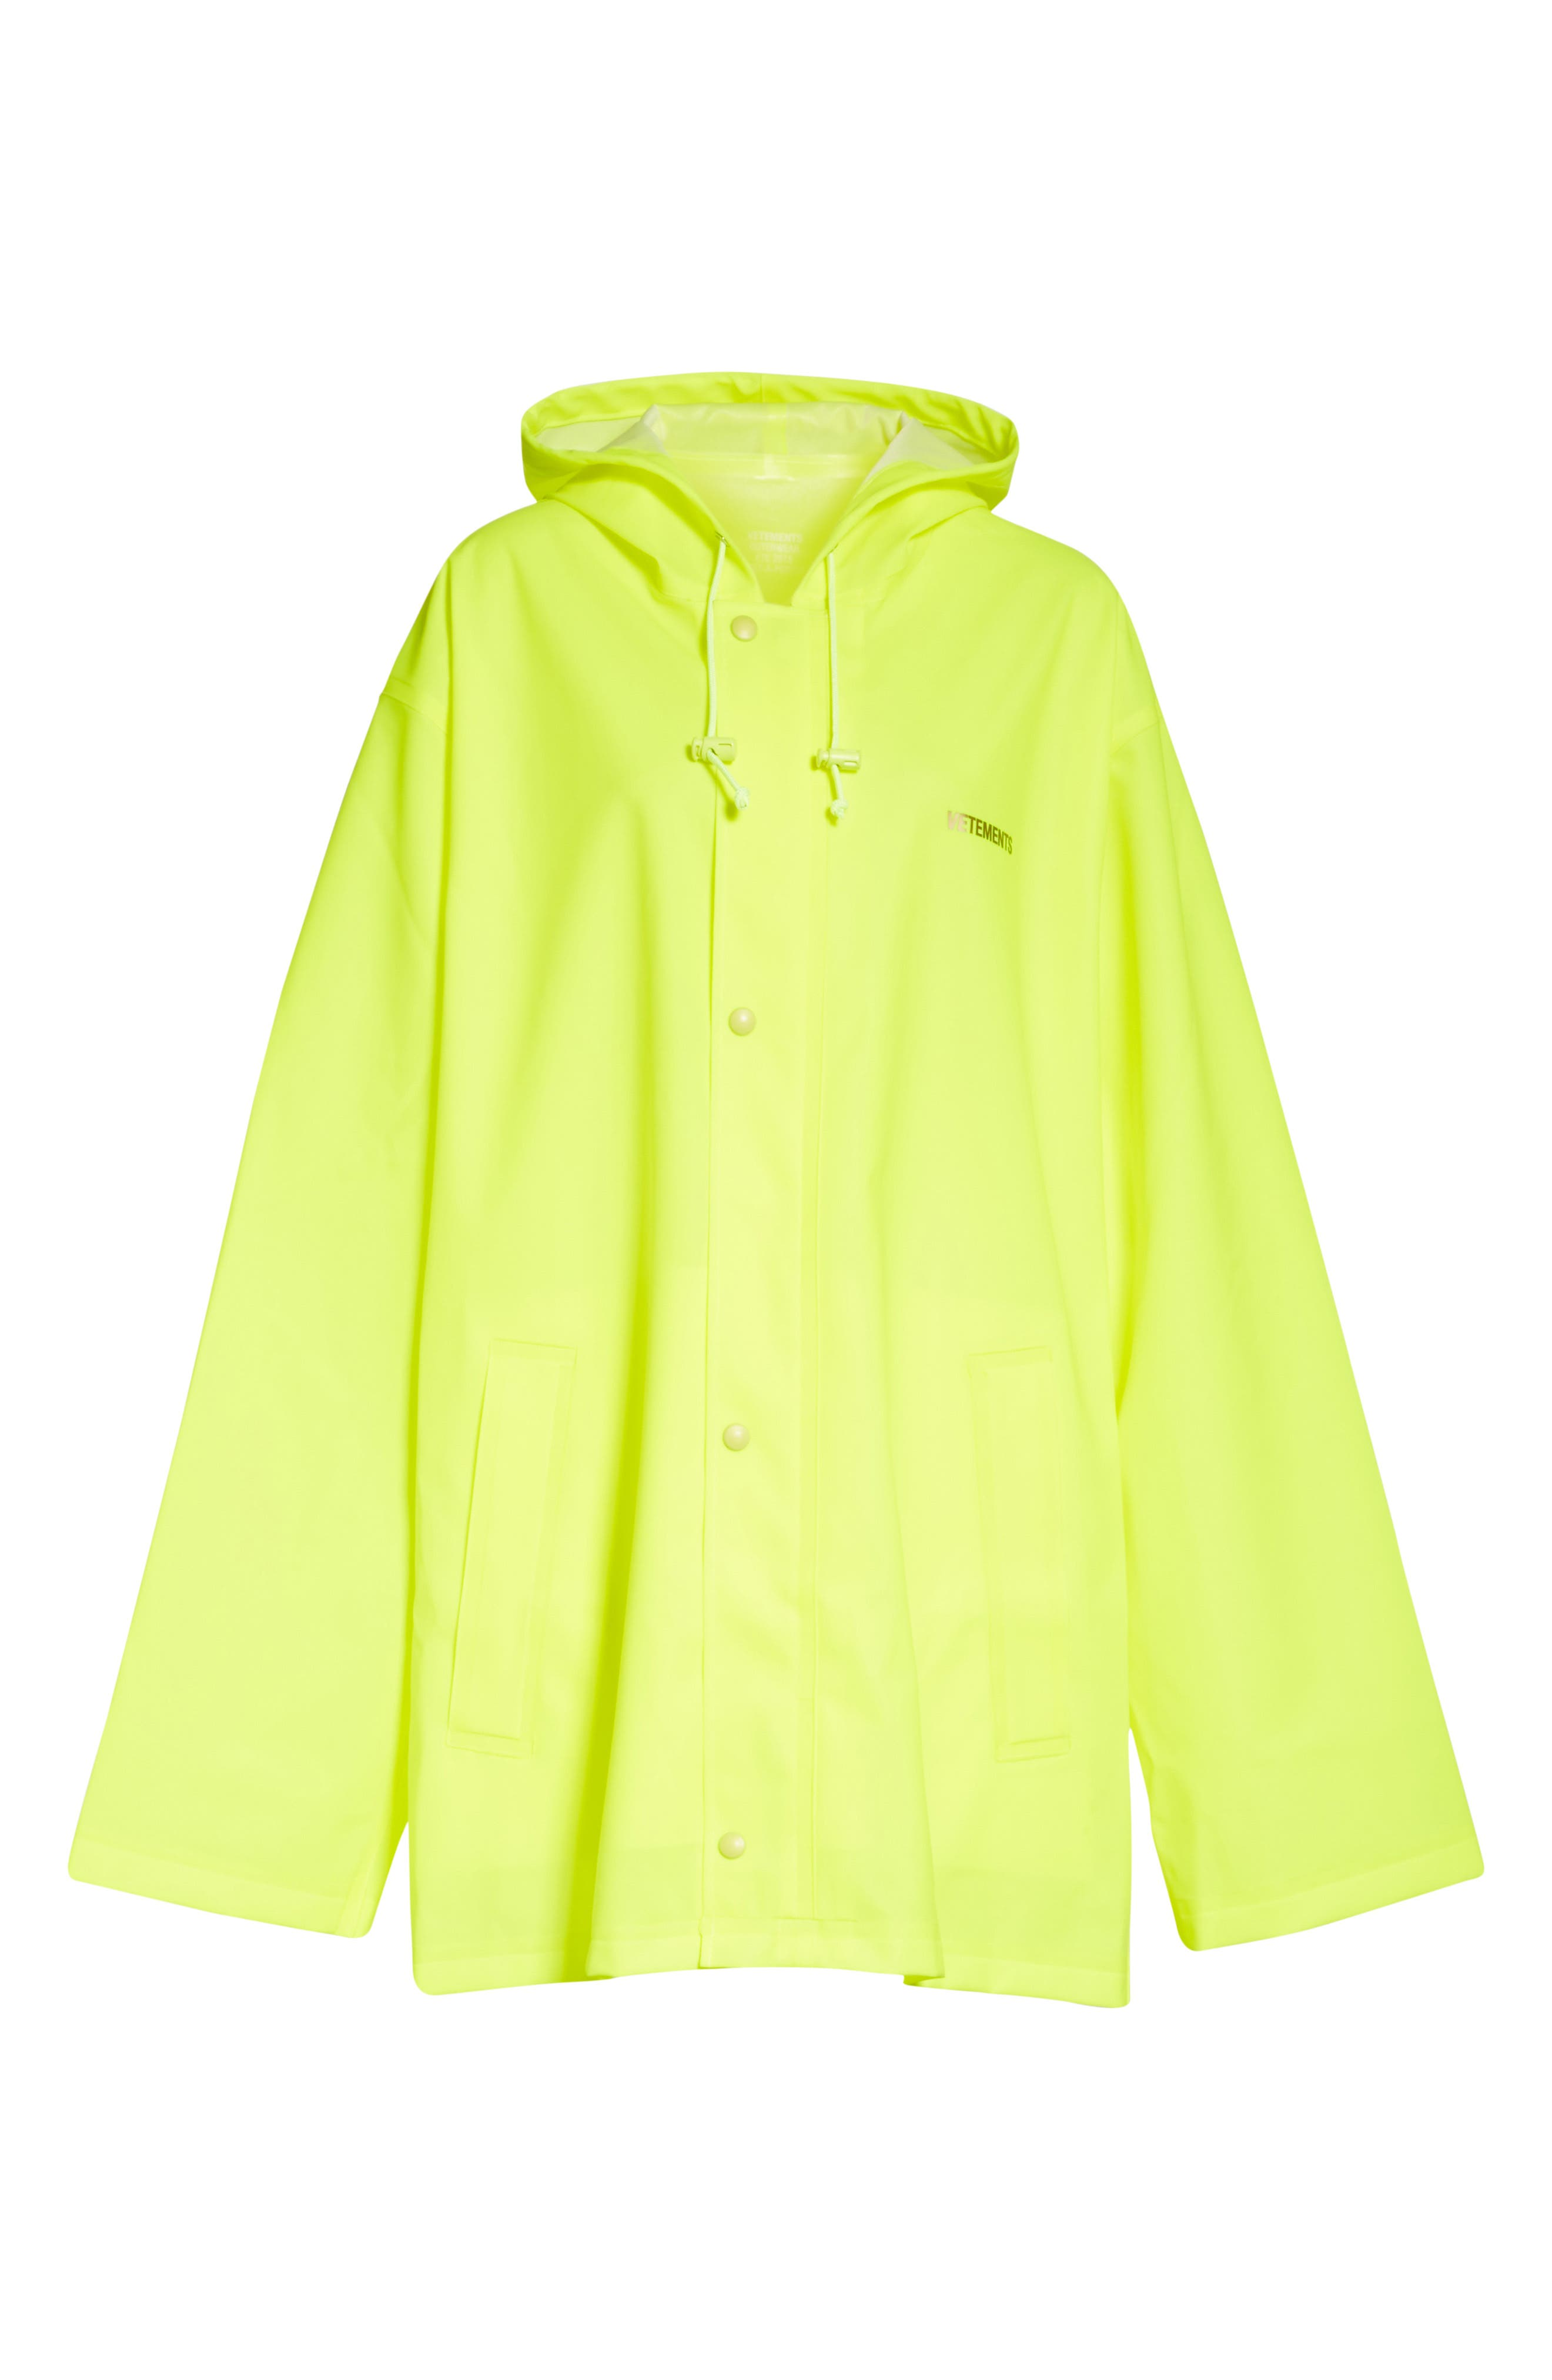 Short Logo Raincoat,                             Alternate thumbnail 5, color,                             700